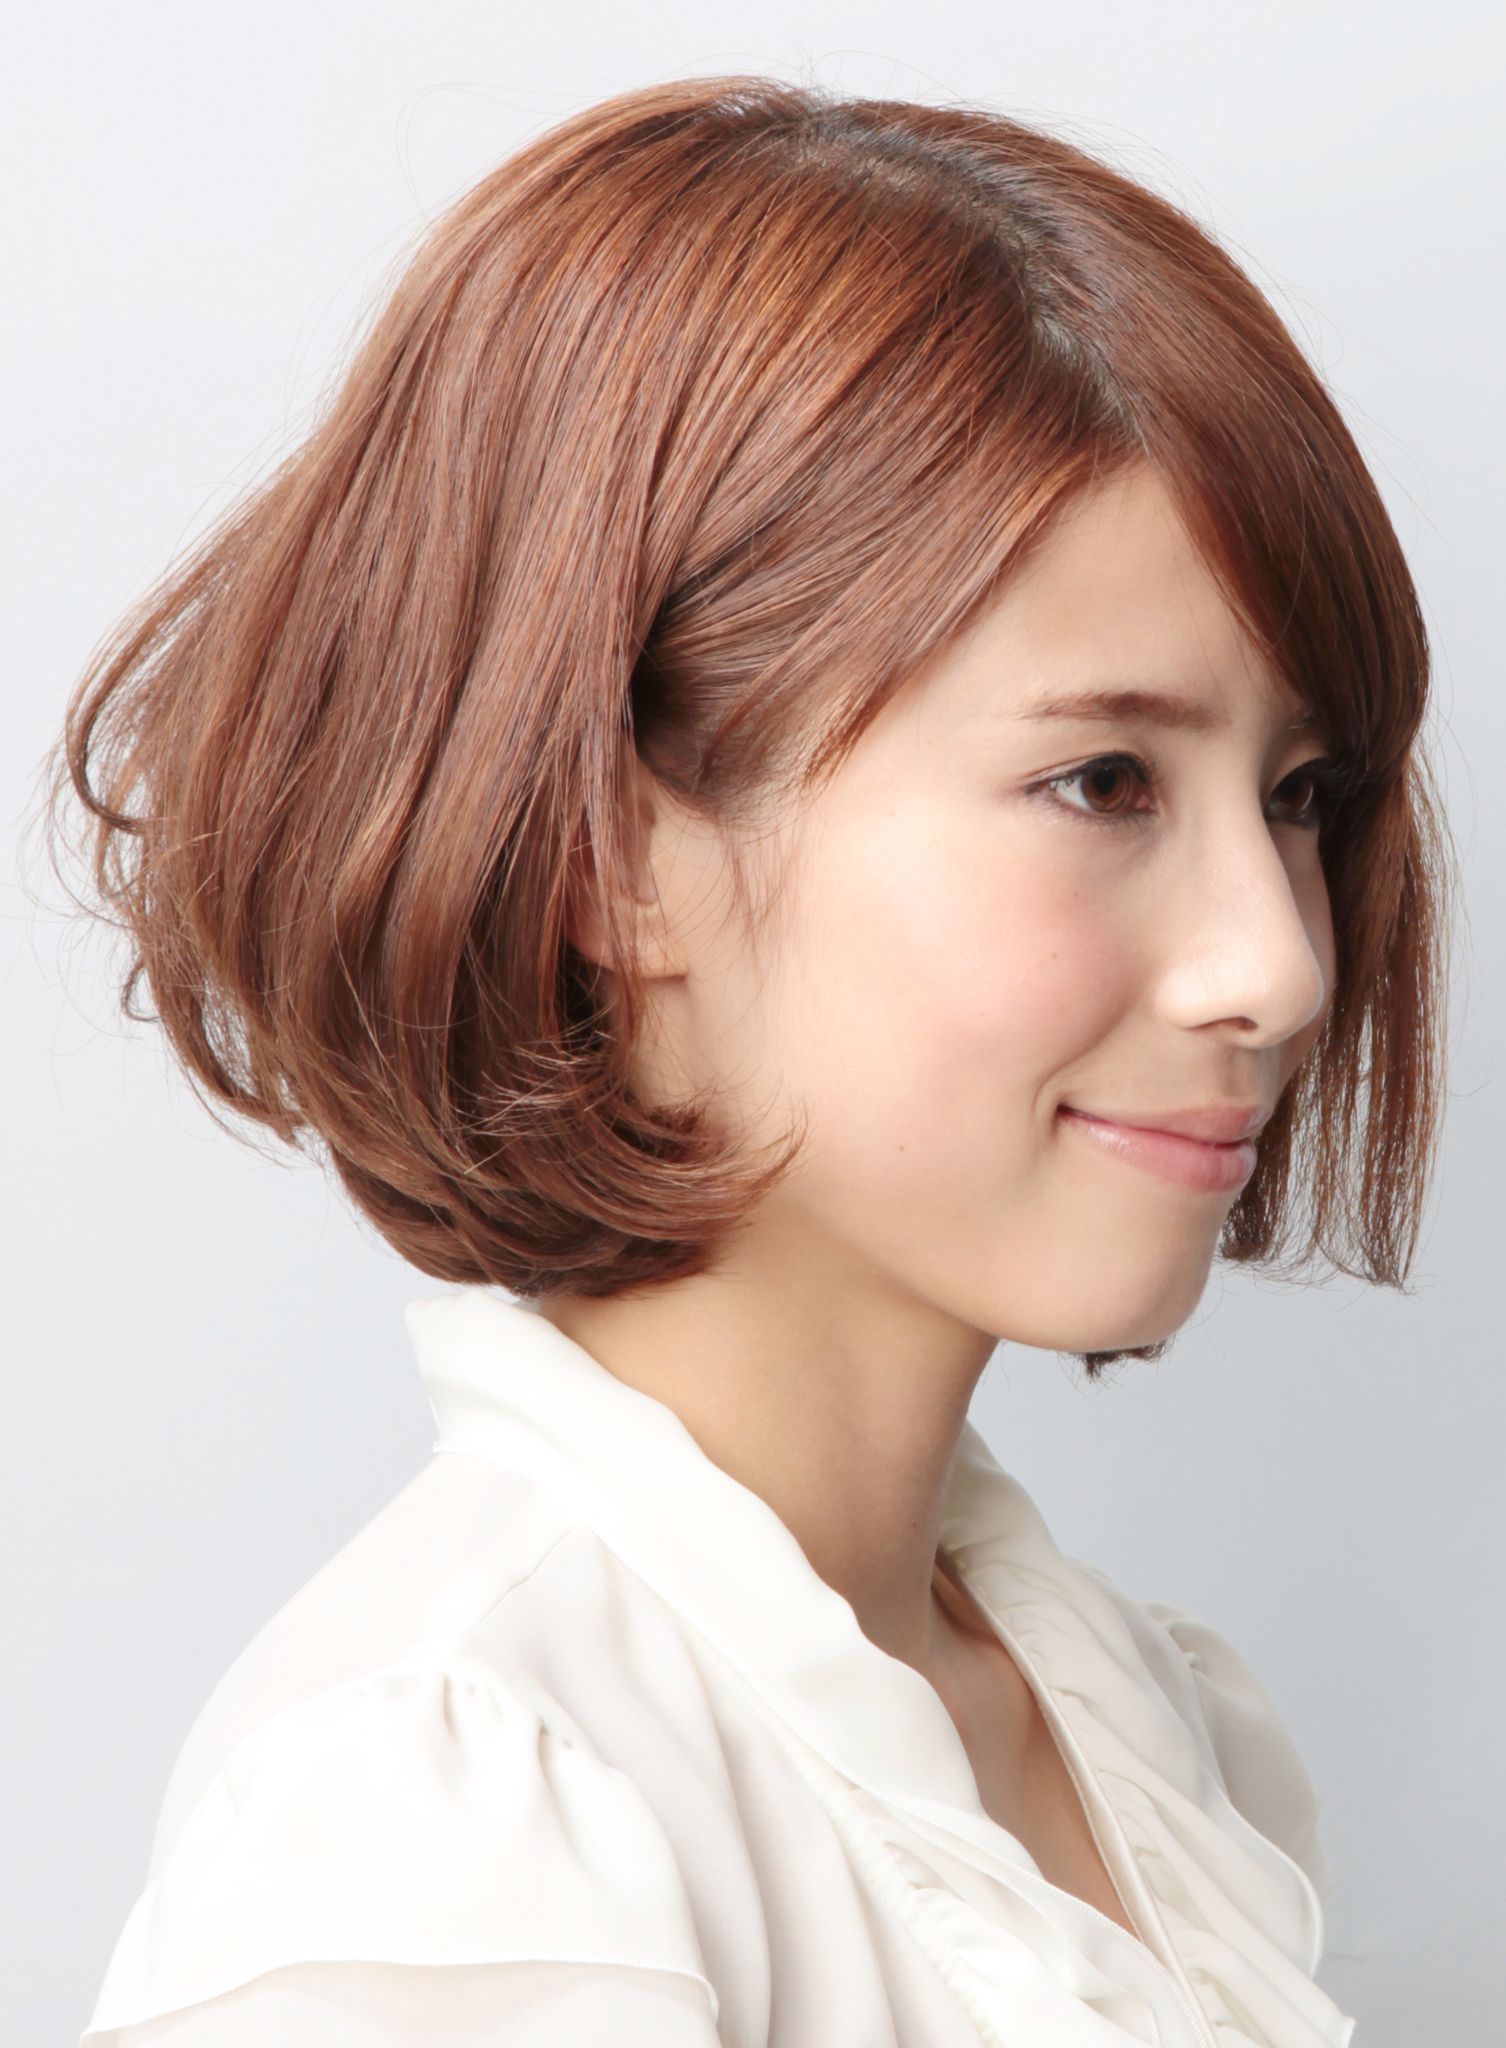 bob #mediumhair #cute #Japanese #haircut  Cute hairstyles for